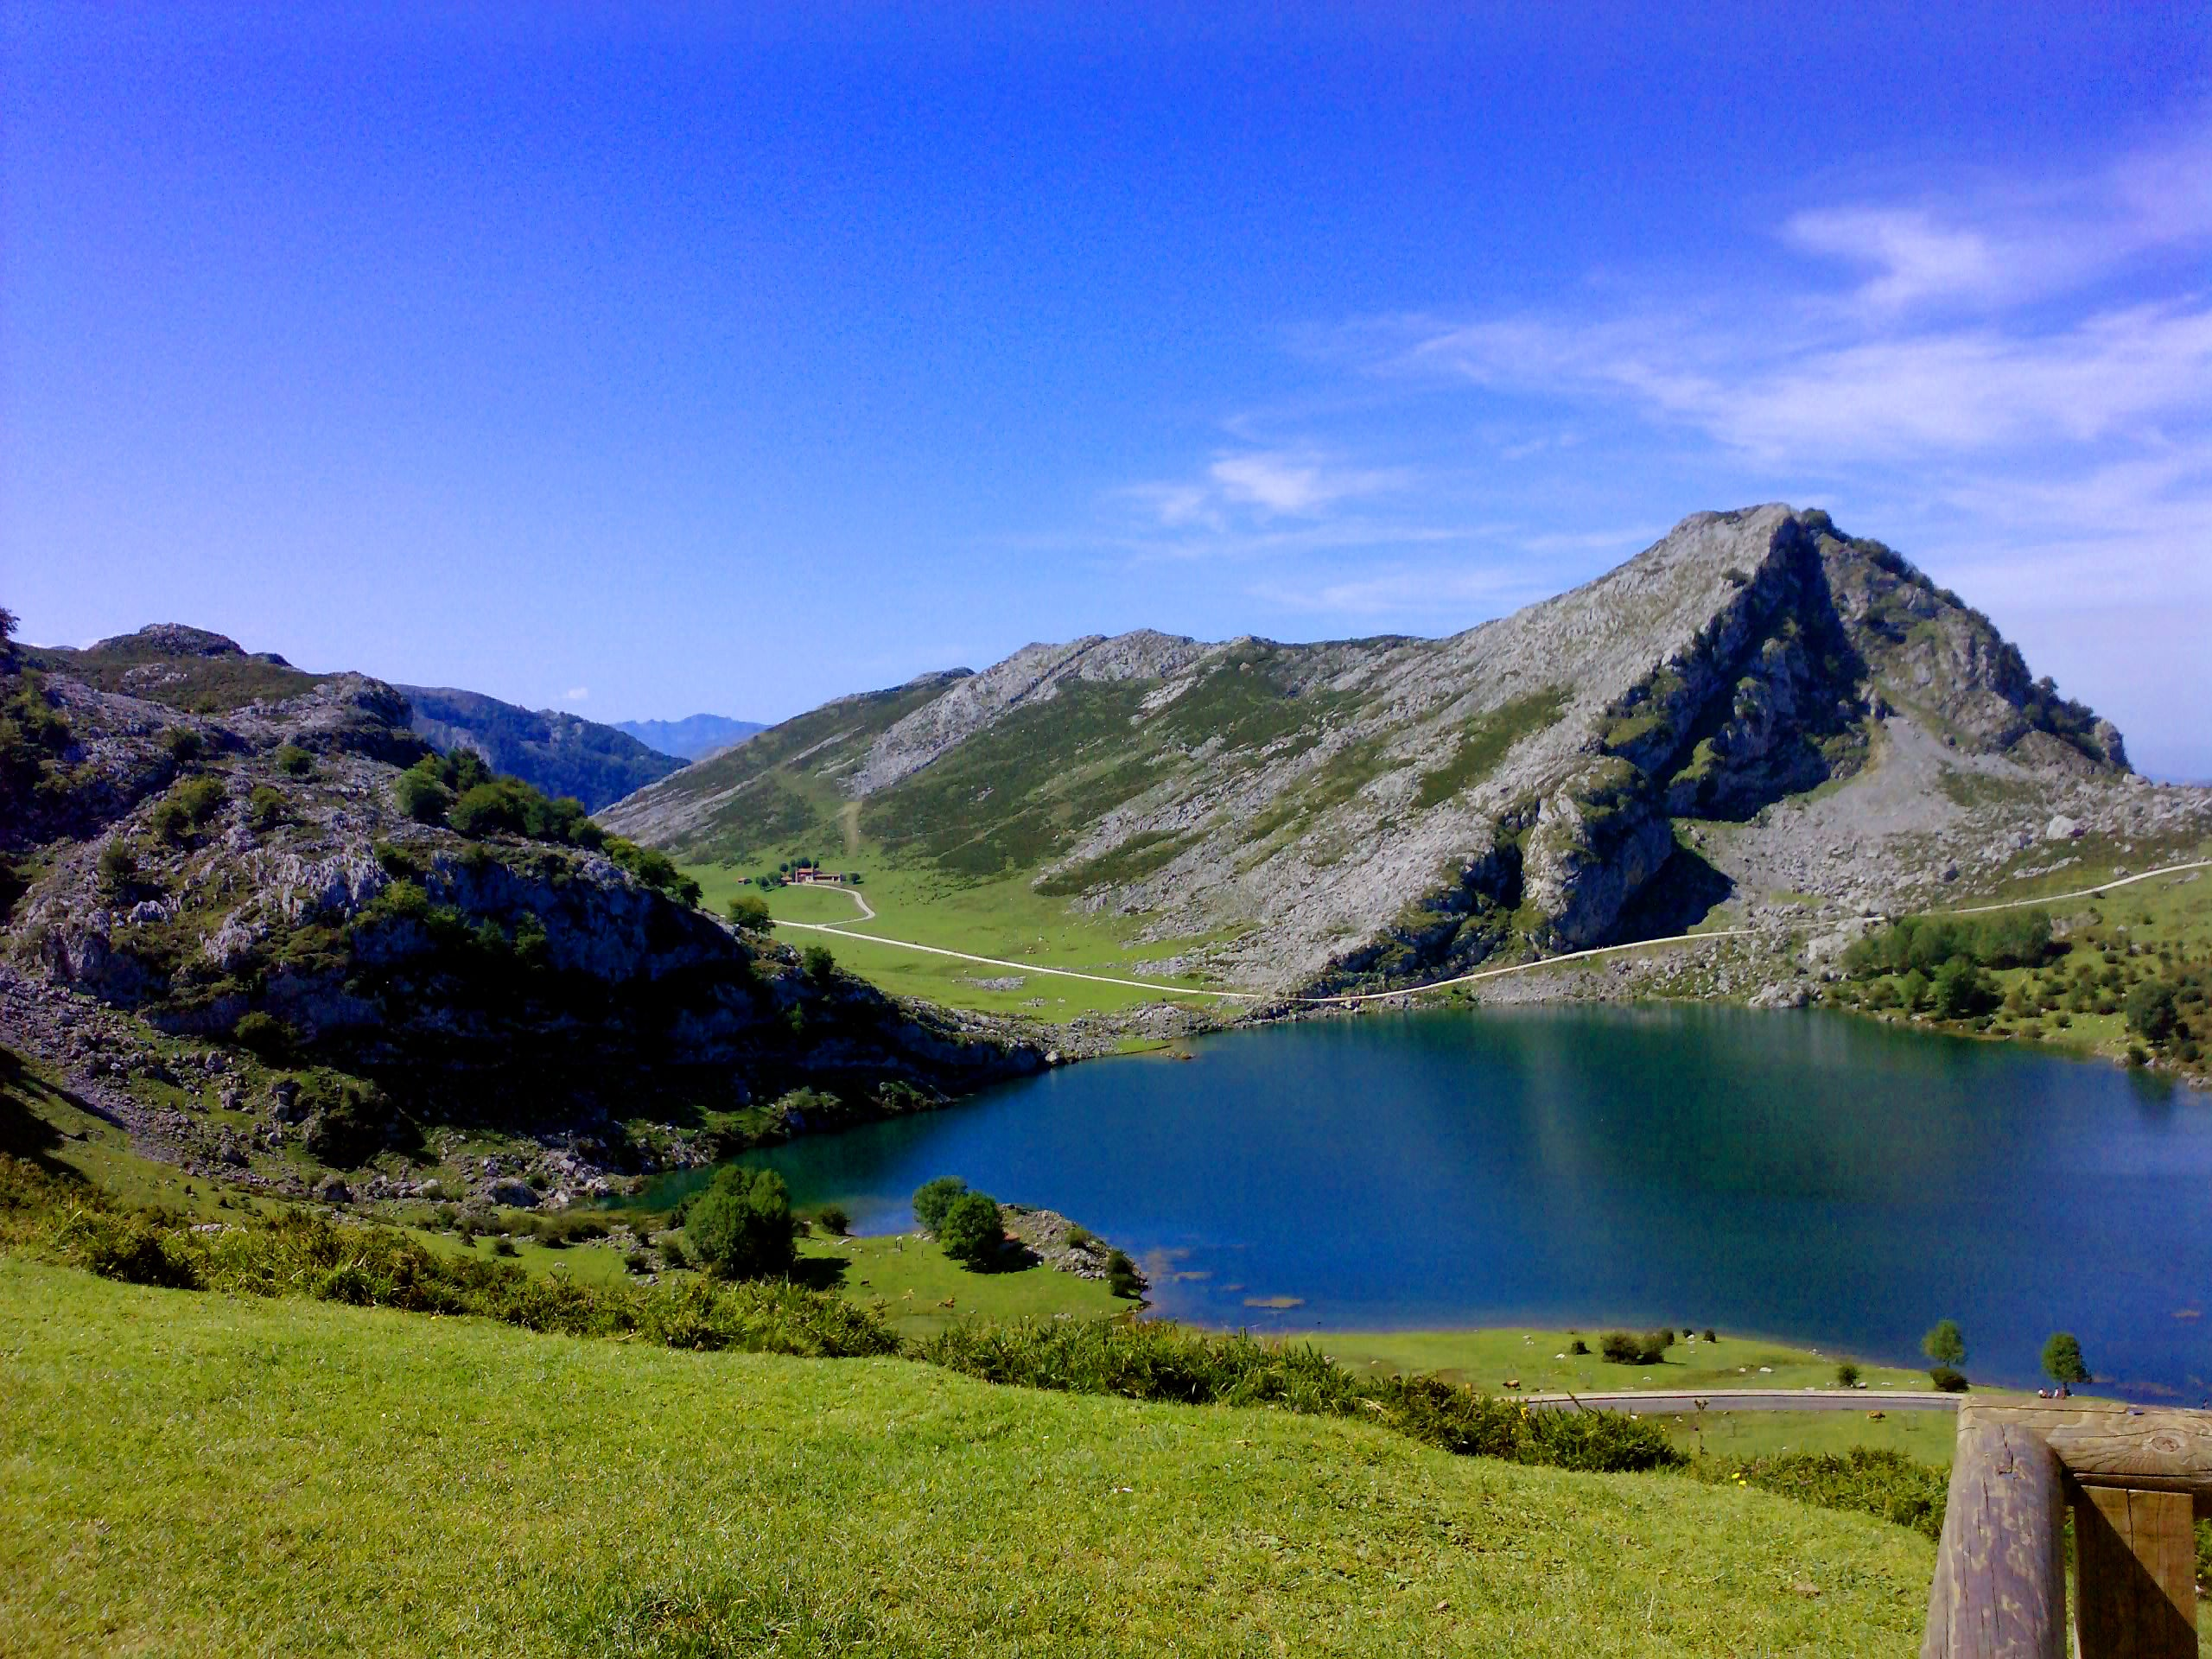 Blue in The Lakes of Covadonga - Enol and Ercina lakes